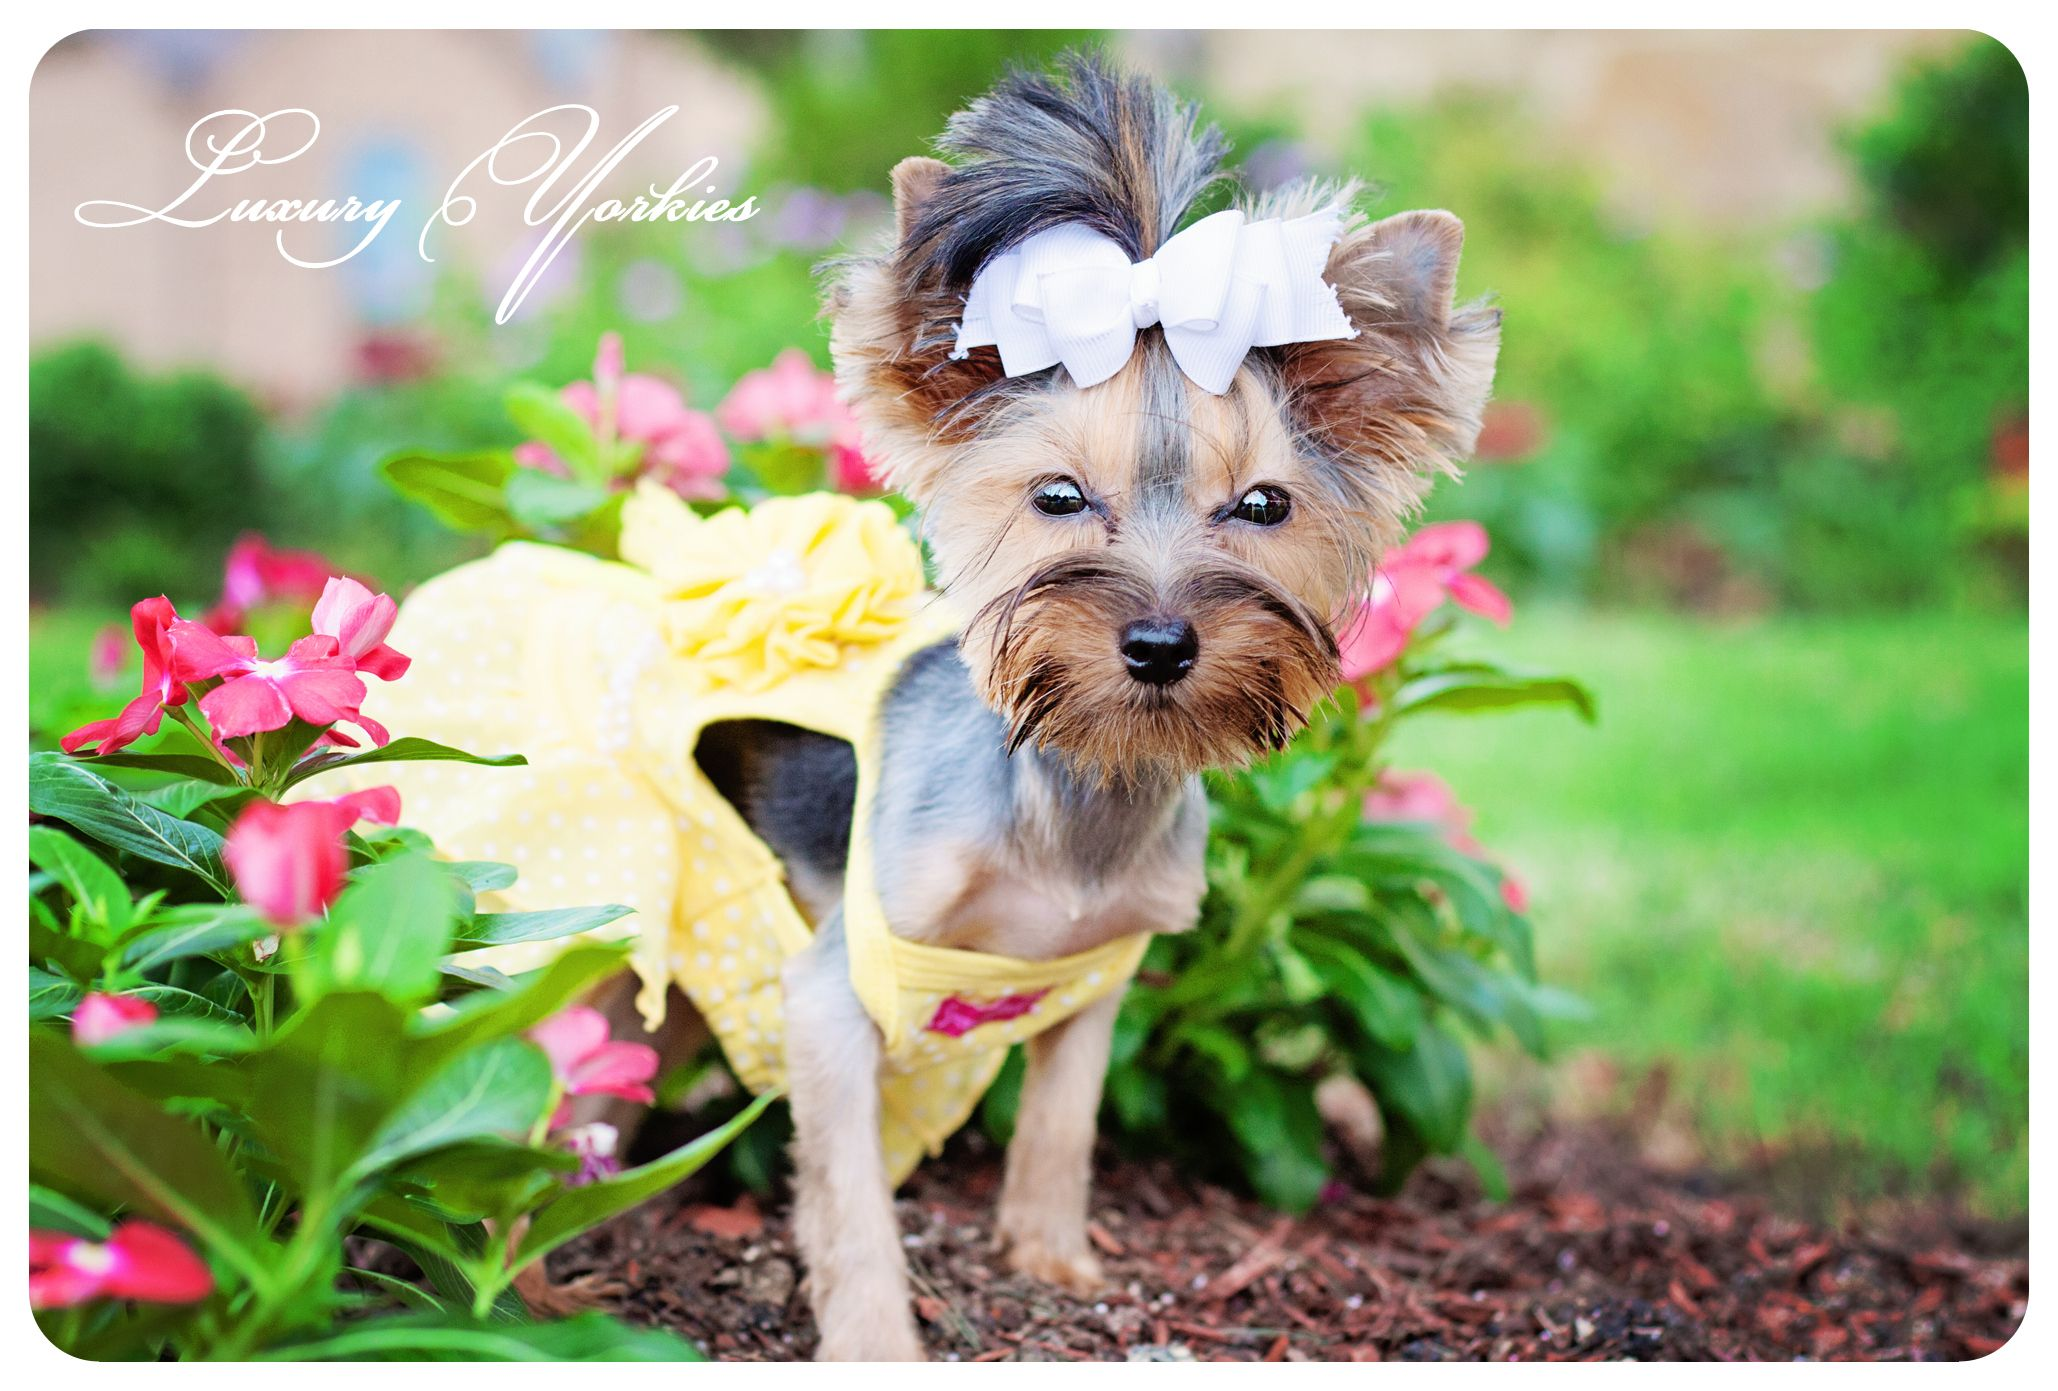 The One And Only Chloe From Luxury Yorkies Yorkie